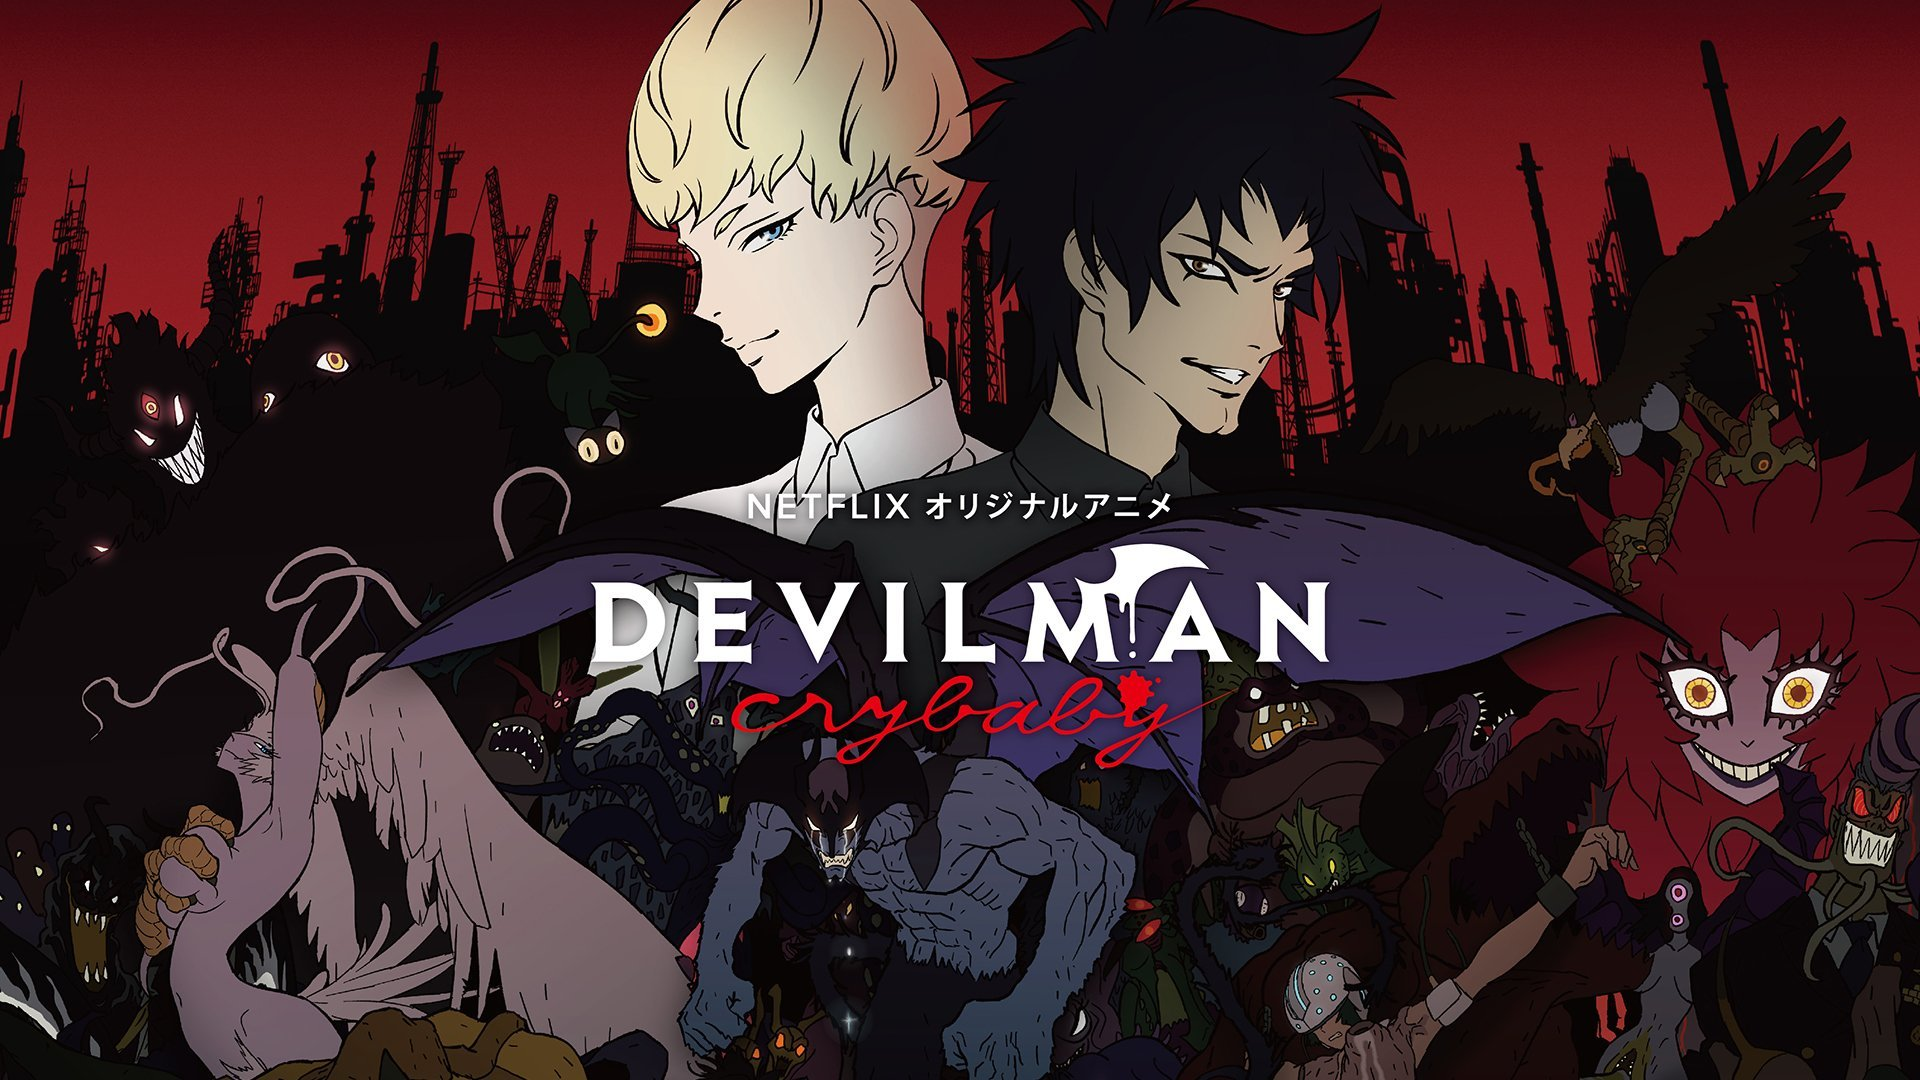 Devilman Crybaby - Adult anime series